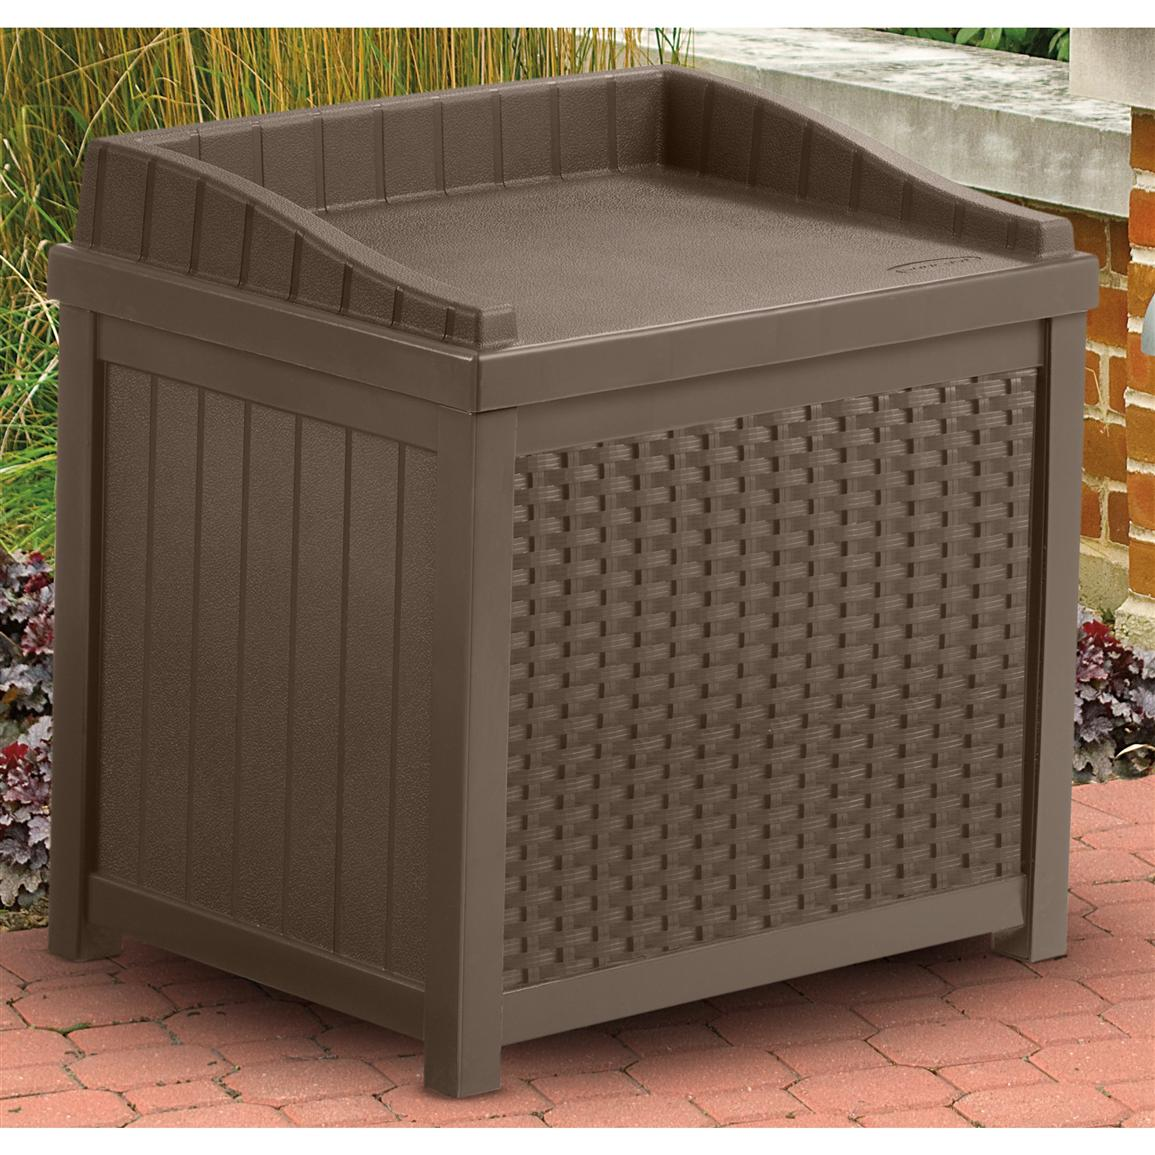 Deck and patio storage box